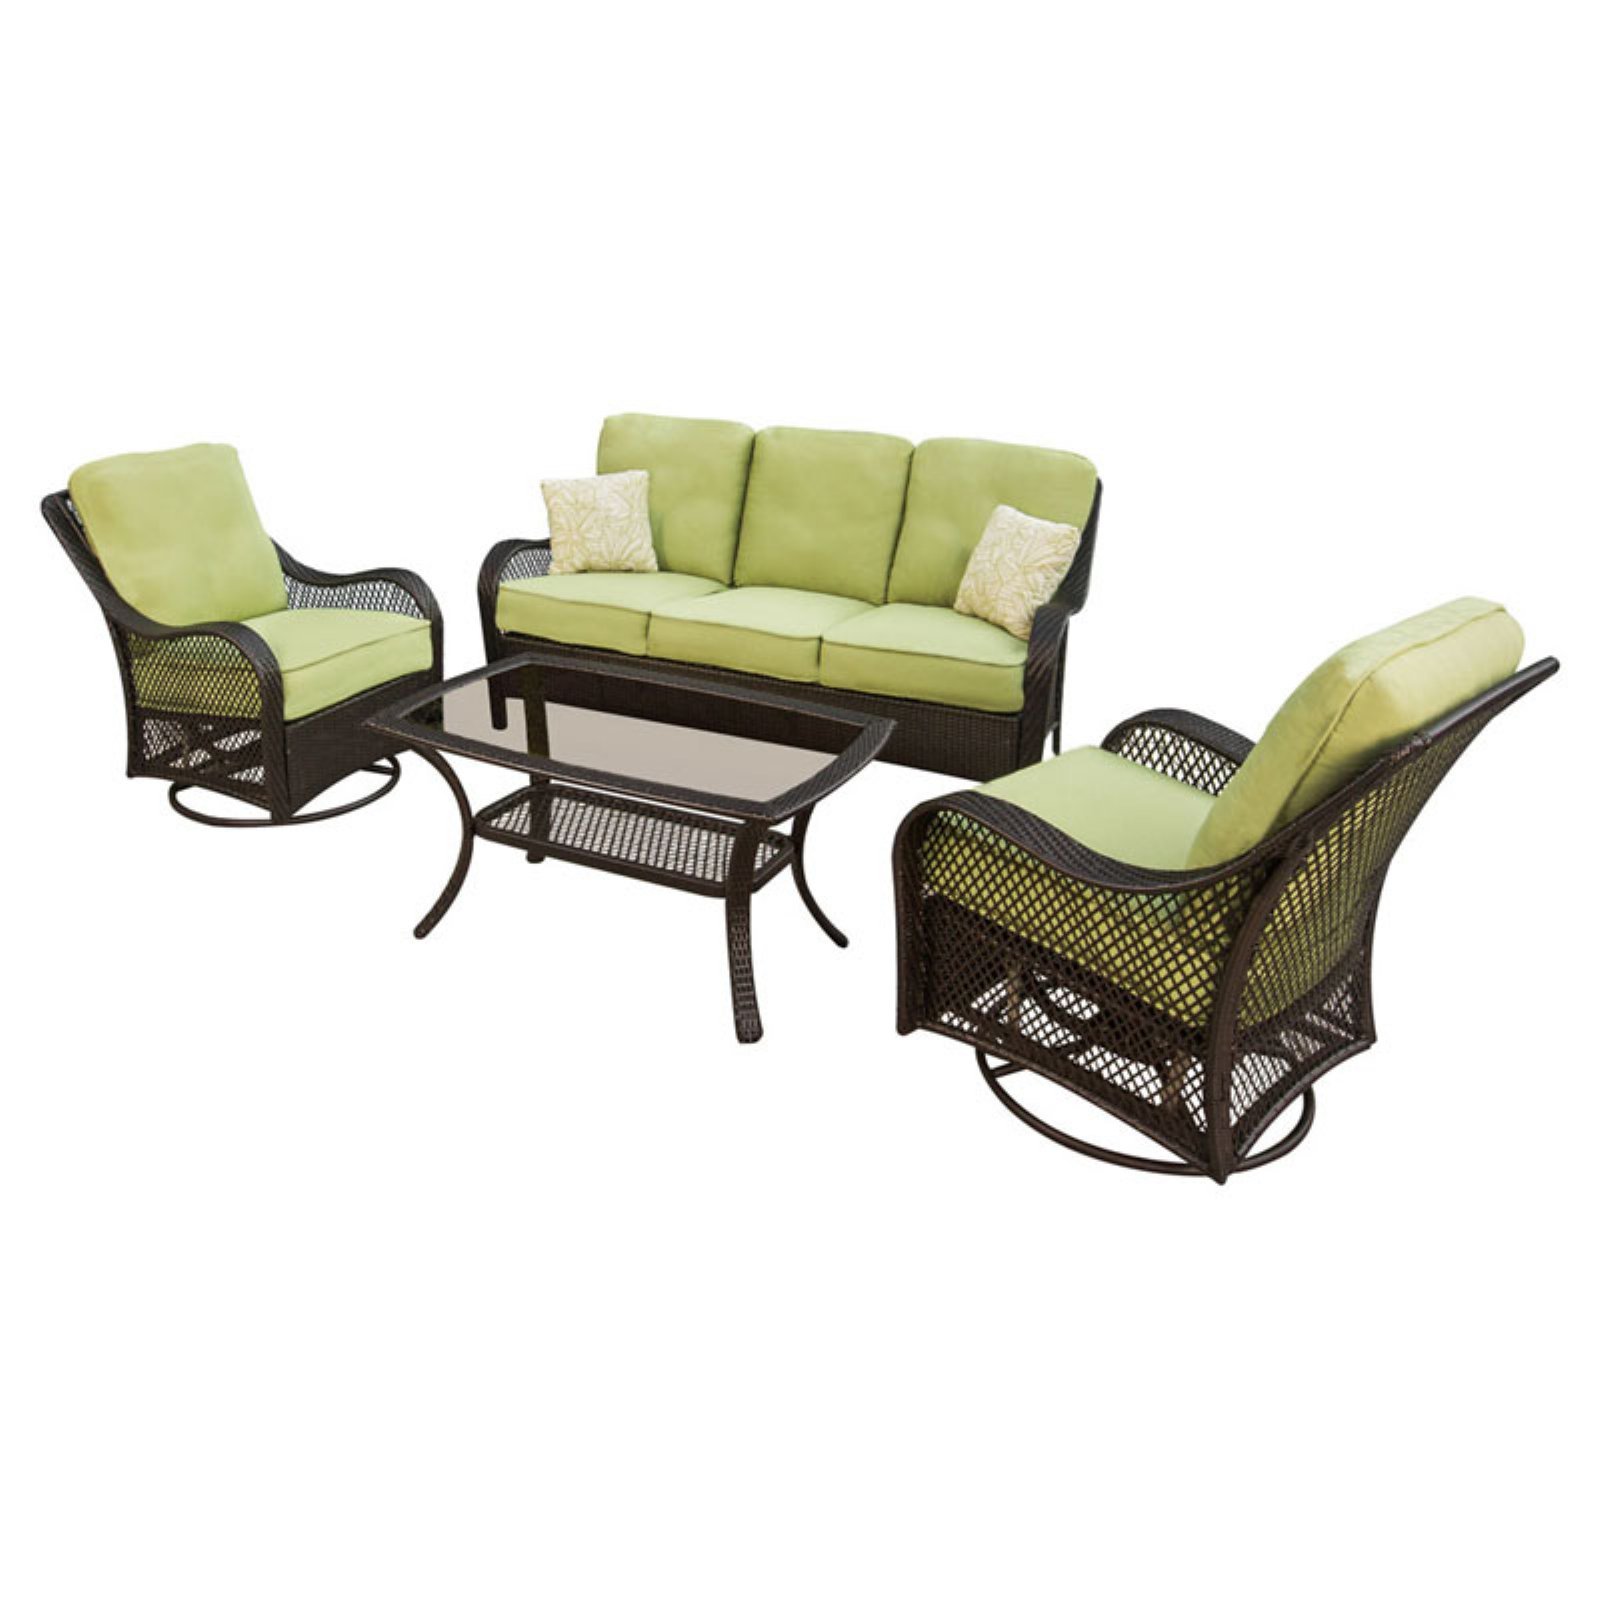 Hanover Orleans 4-Piece Outdoor Lounging Set